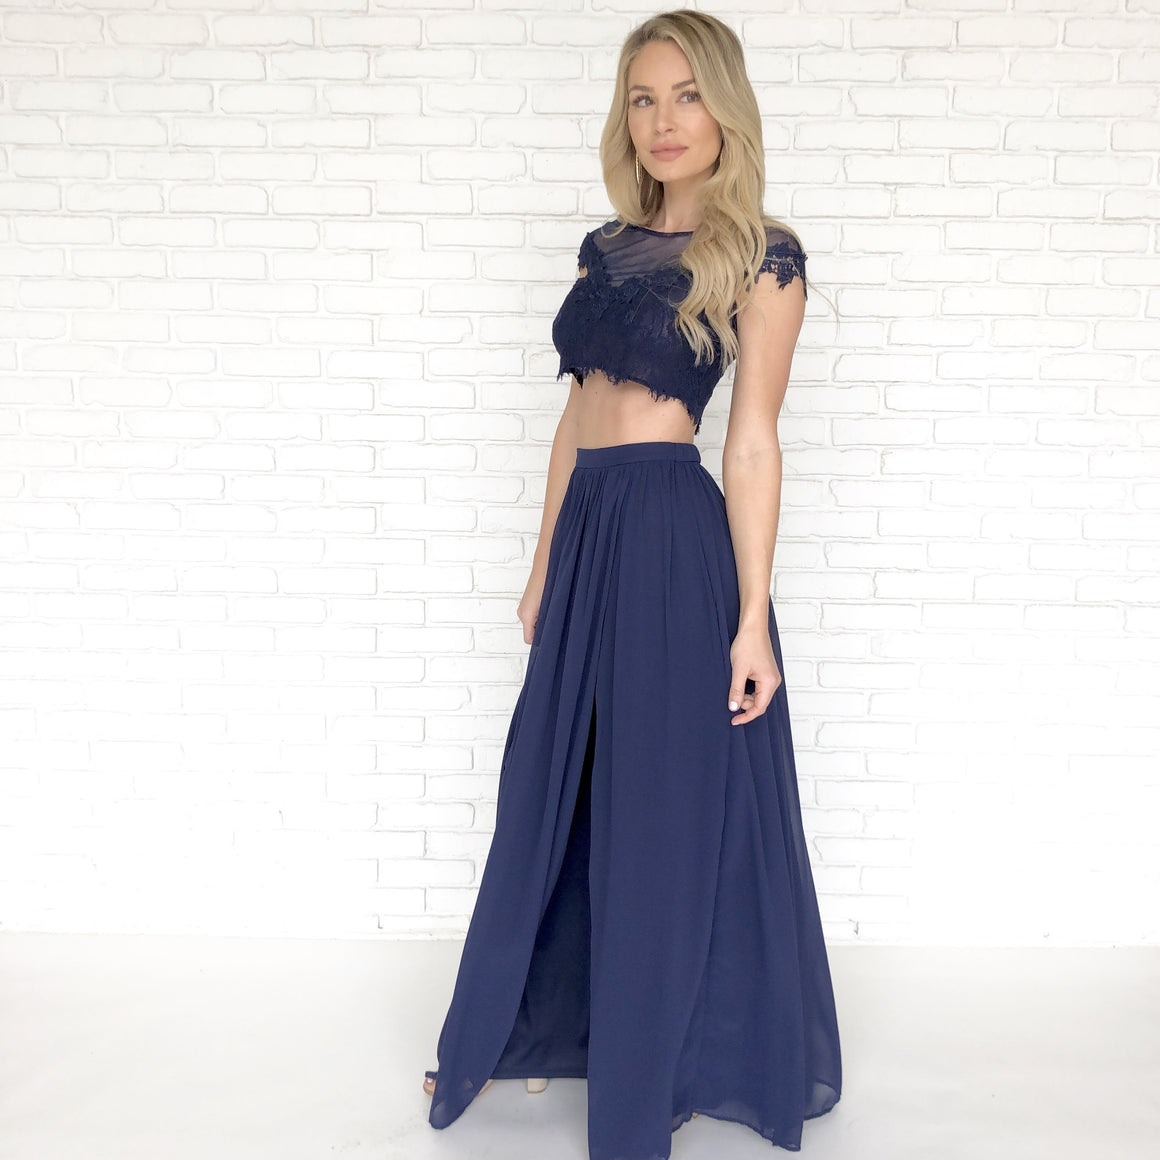 Dance With Me Lace Top & Maxi Skirt Set In Navy Blue - Dainty Hooligan